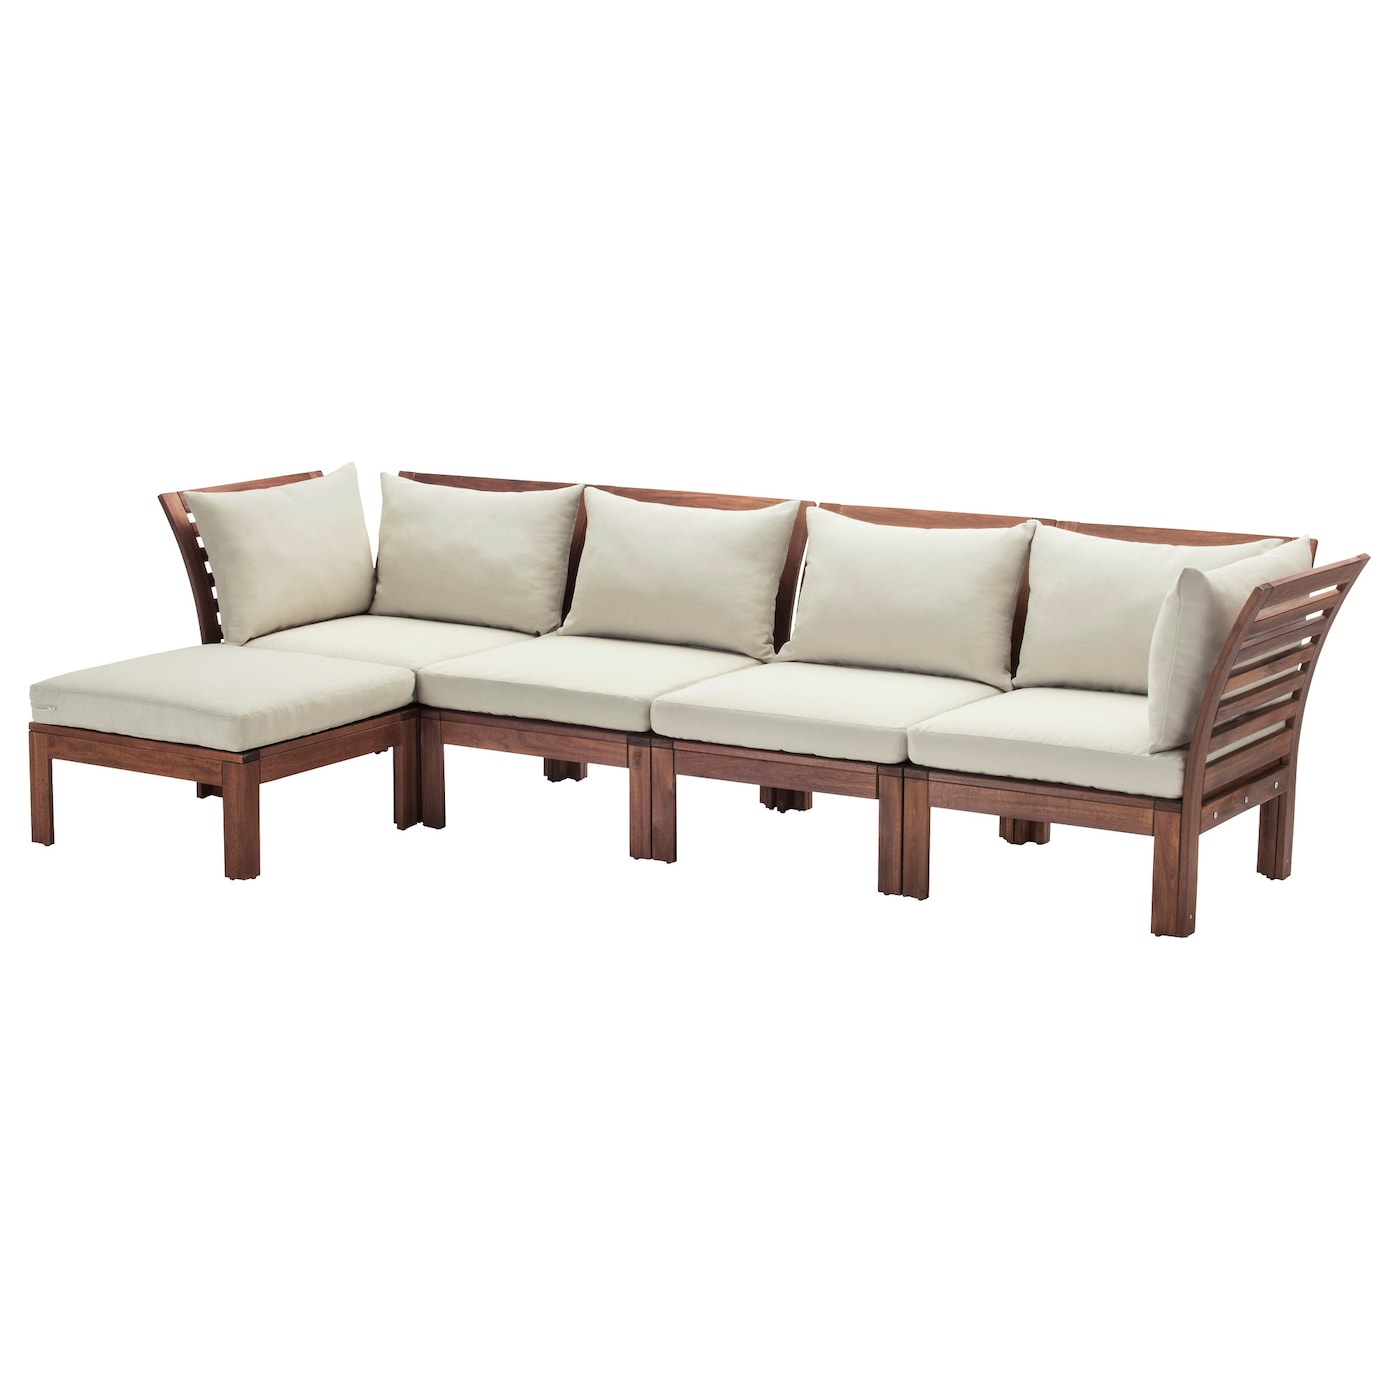 Lounge sofa outdoor holz  ÄPPLARÖ 4-seat sofa with footstool, outdoor Brown stained/hållö ...